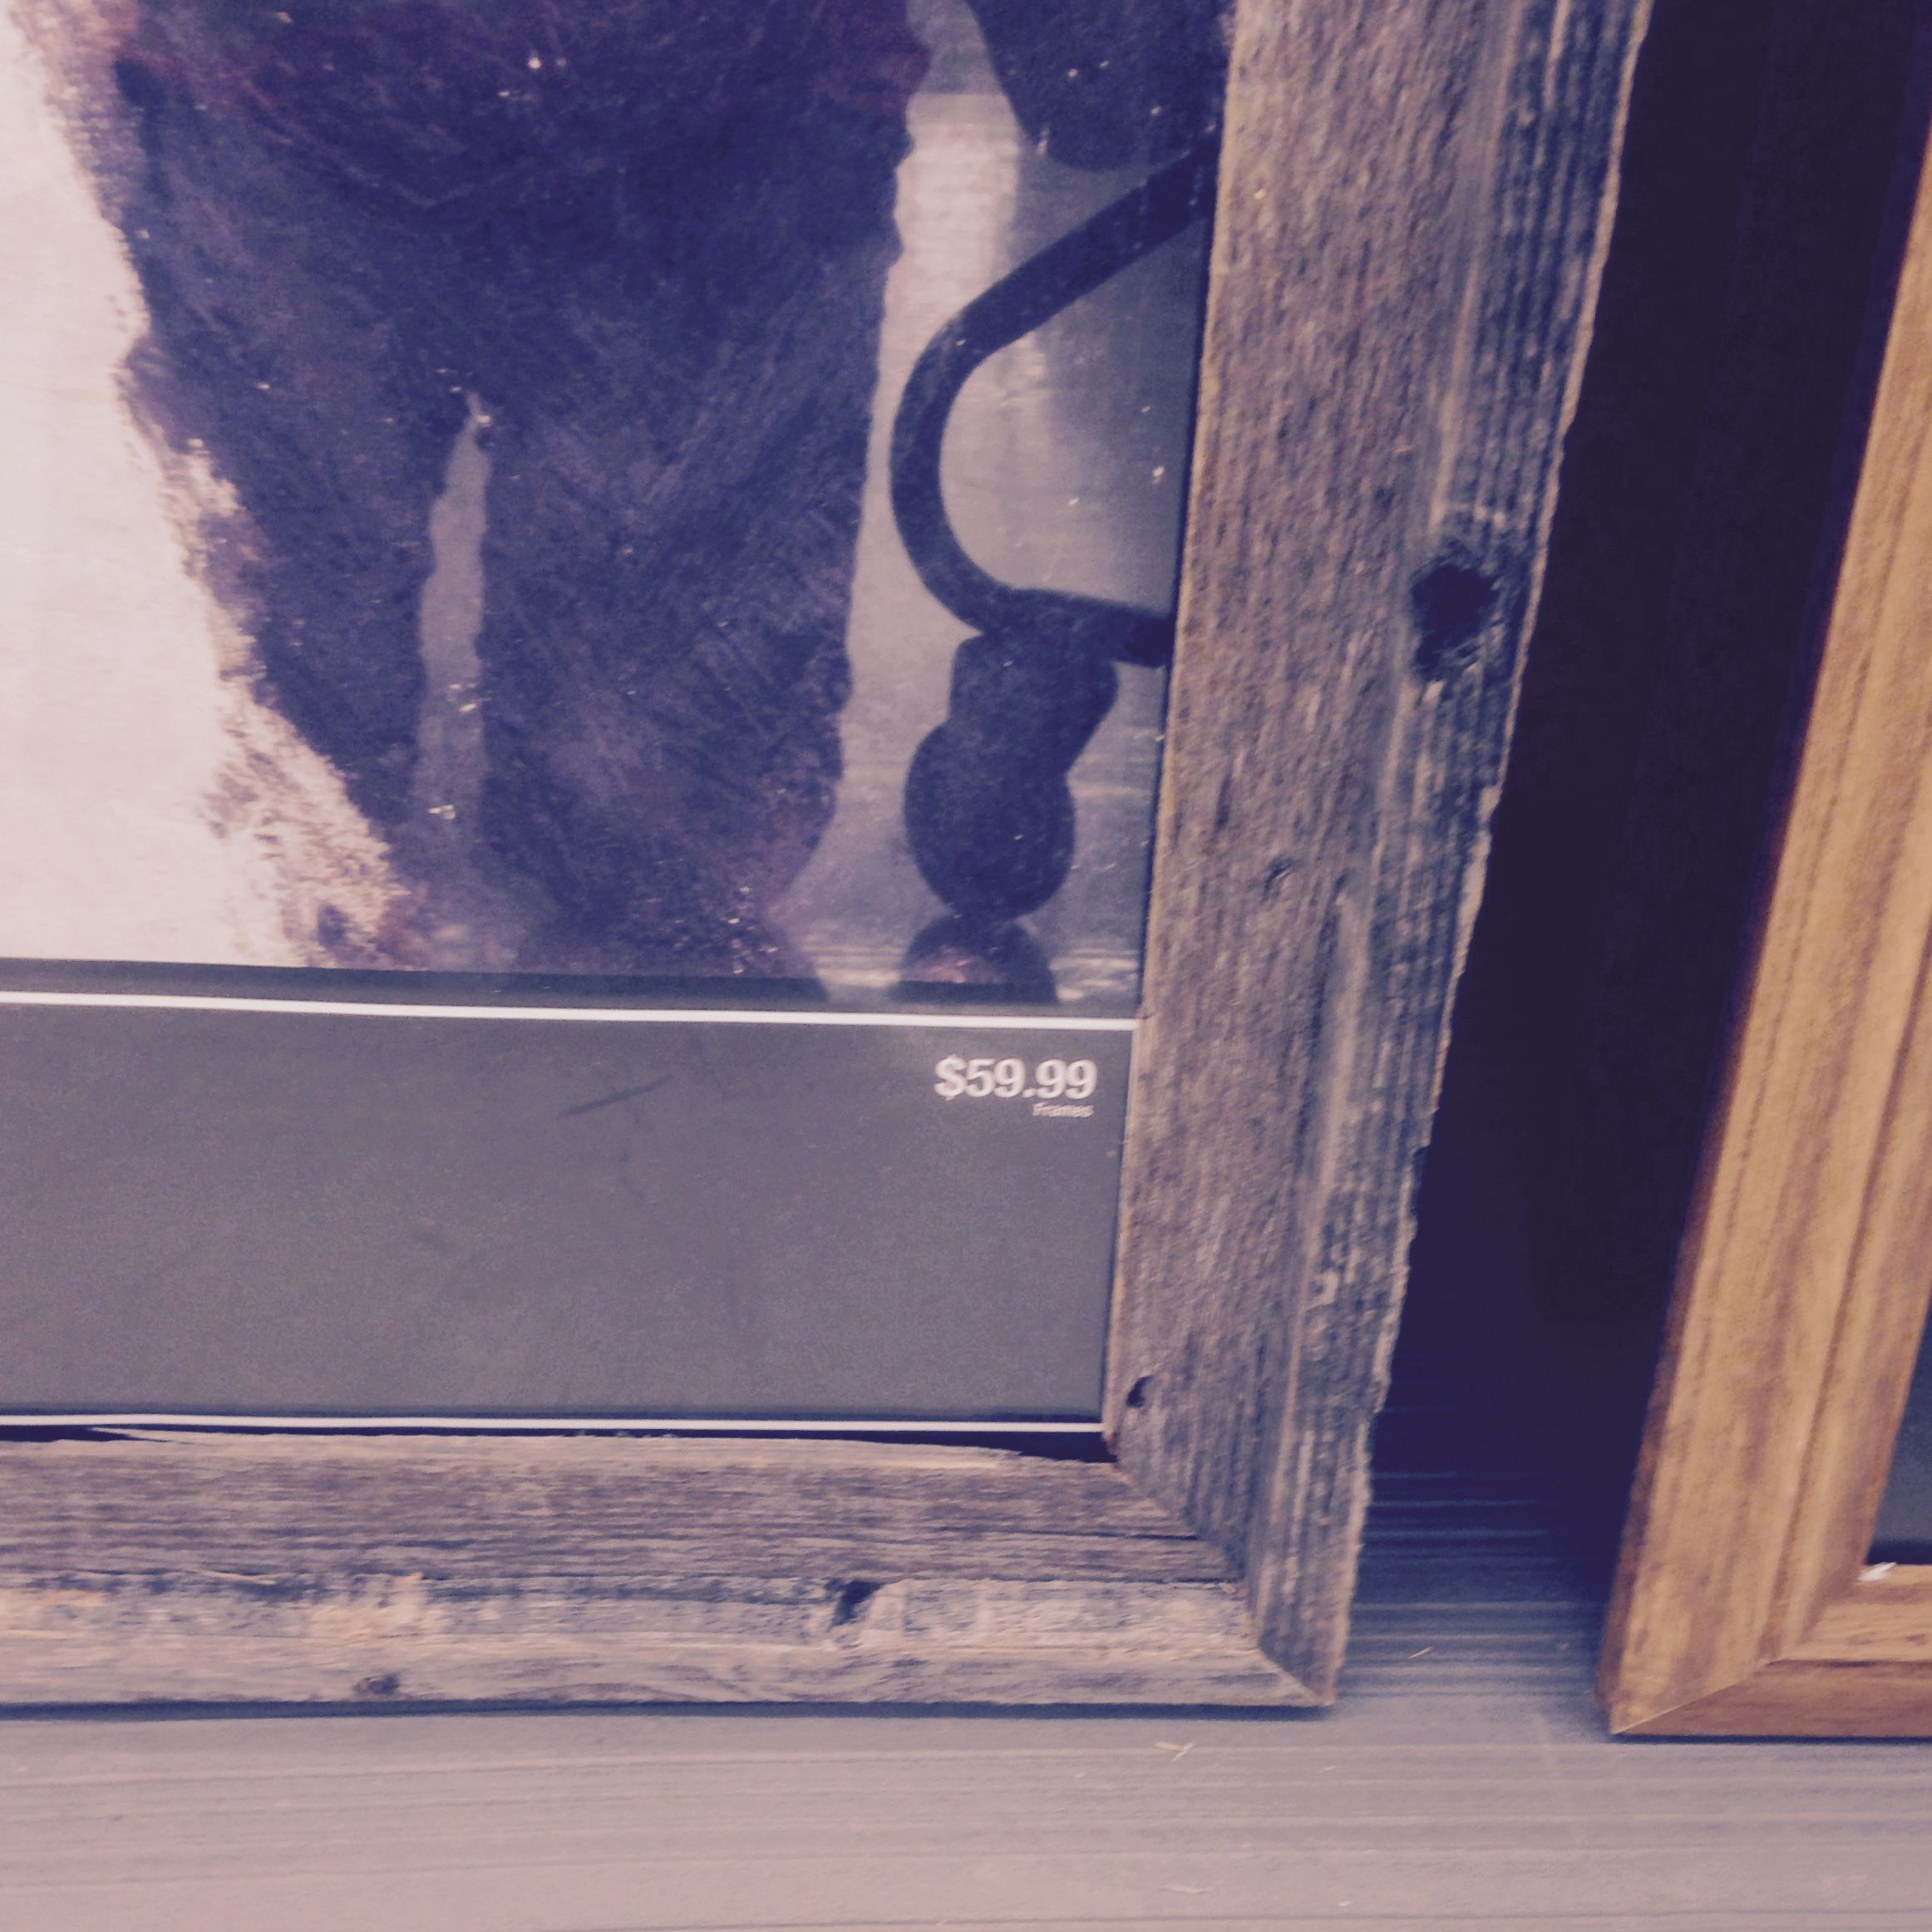 Love This Frame Size 24x36, Comes In Two Smaller Sizes @ Hobby Lobby. Would